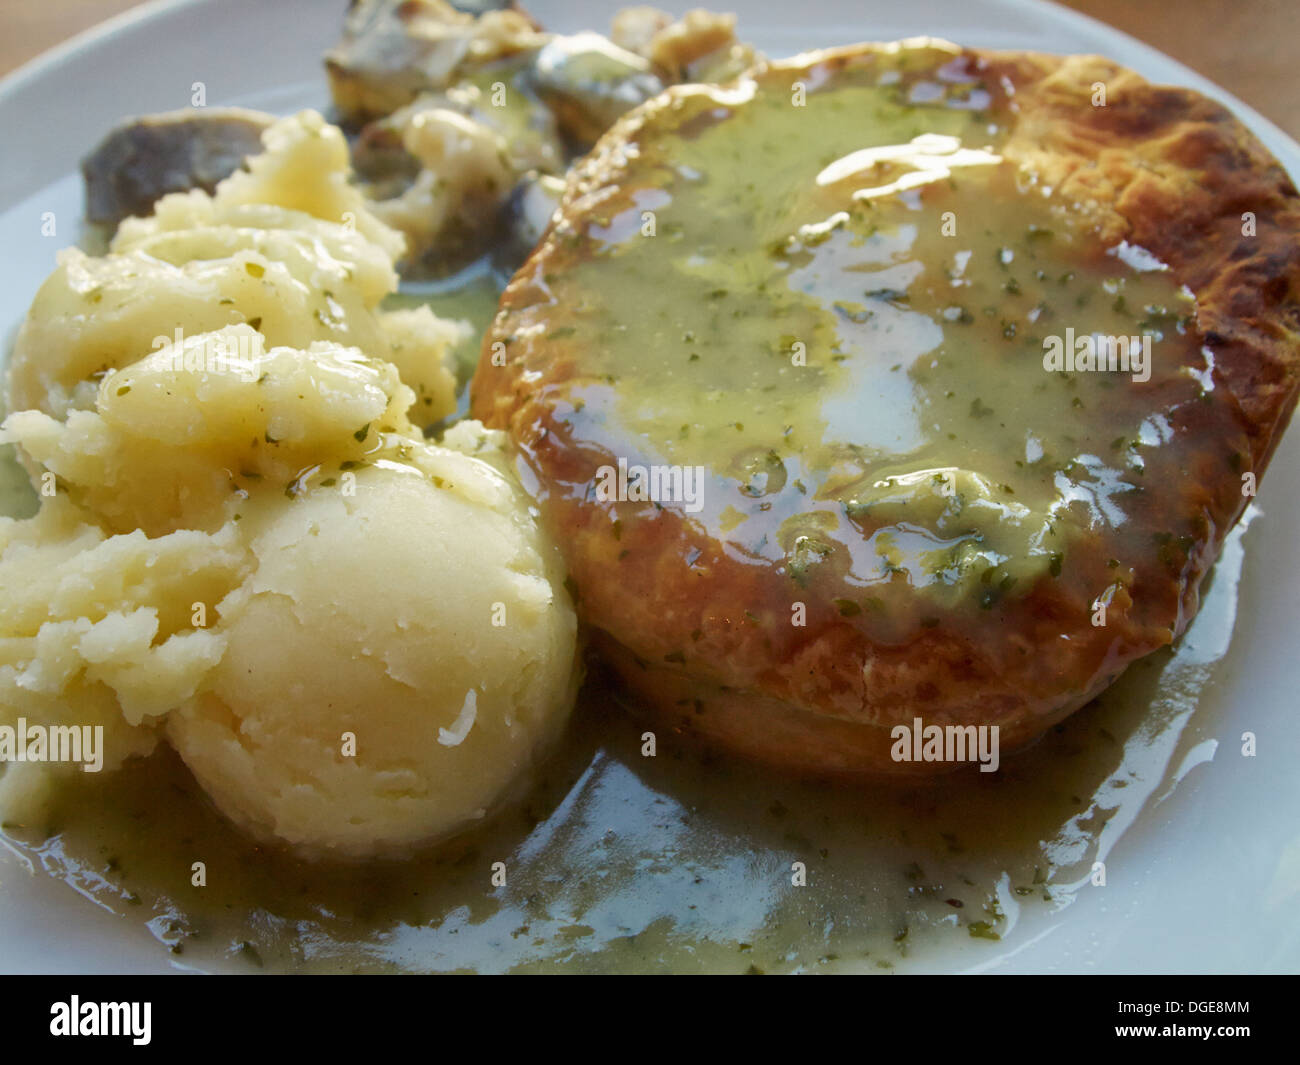 Pie, eel and mash, a classic London meal - Stock Image